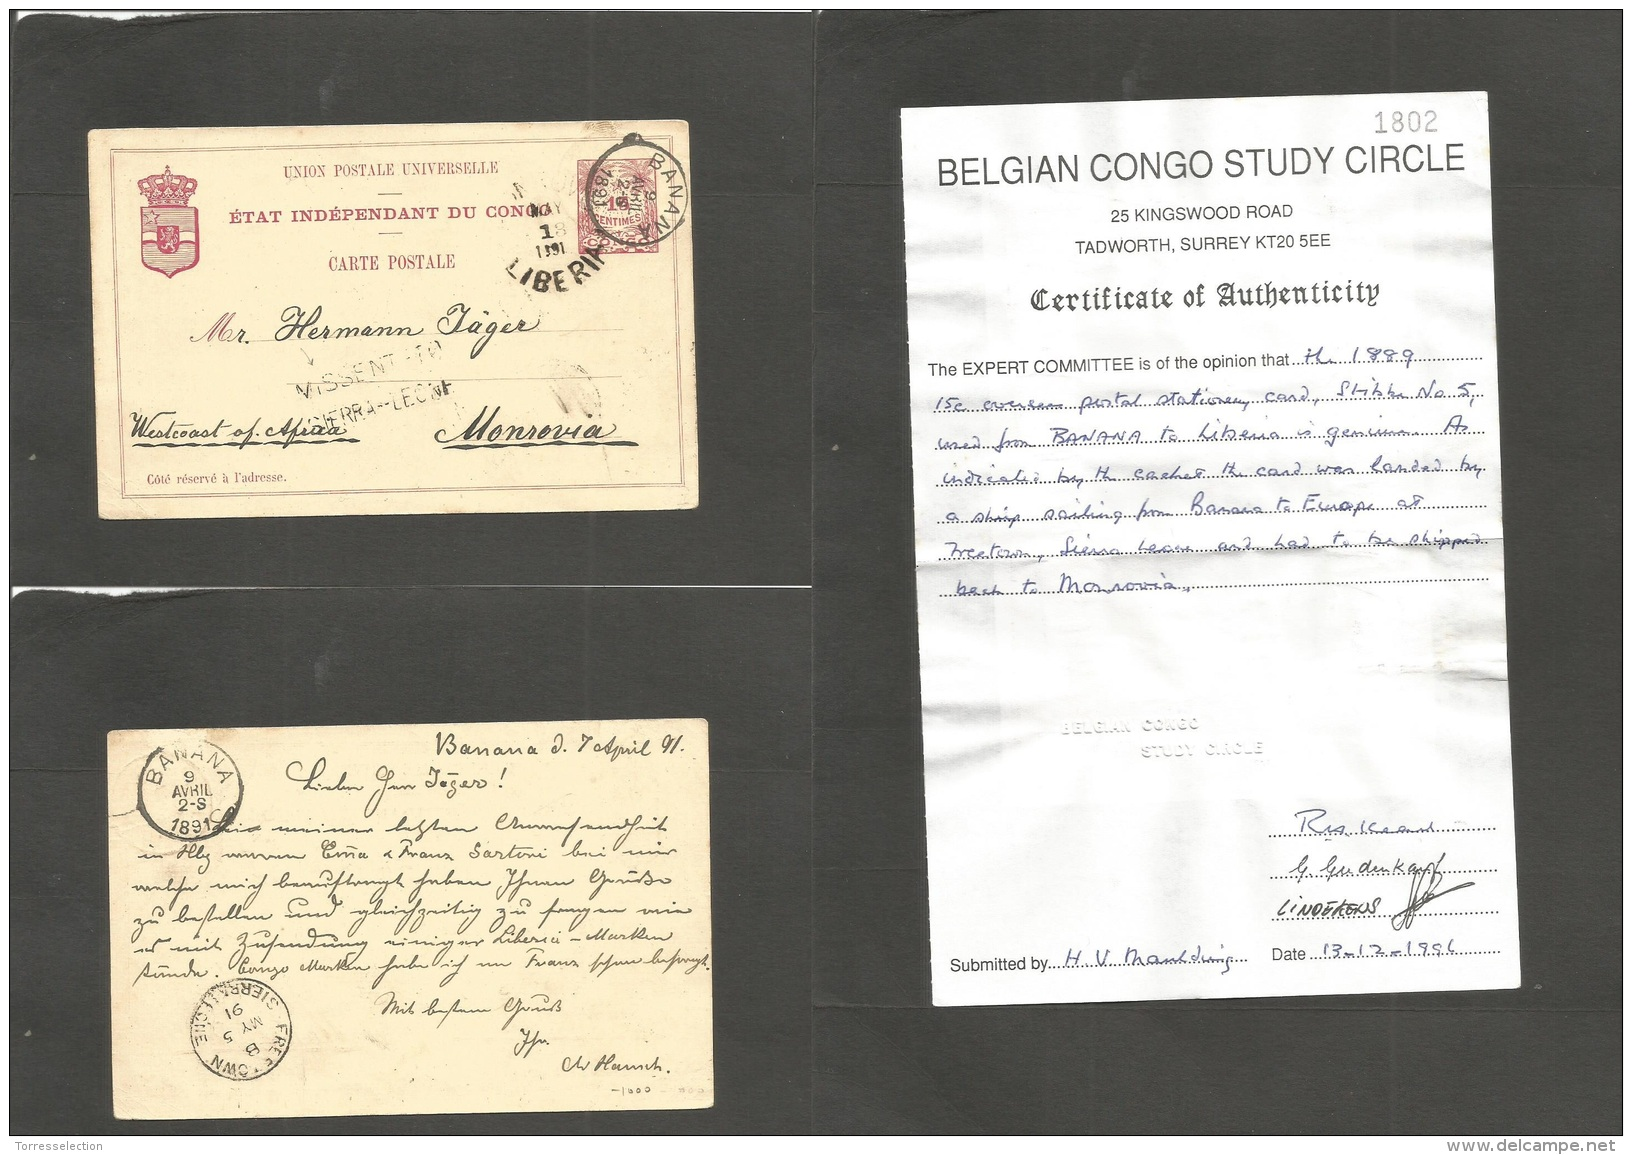 Bc - Sierra Leone. 1891 (7 April) Belgian Congo Independent State Period. Banana - Monrovia, Liberia (18 May) 15c Red St - Unclassified